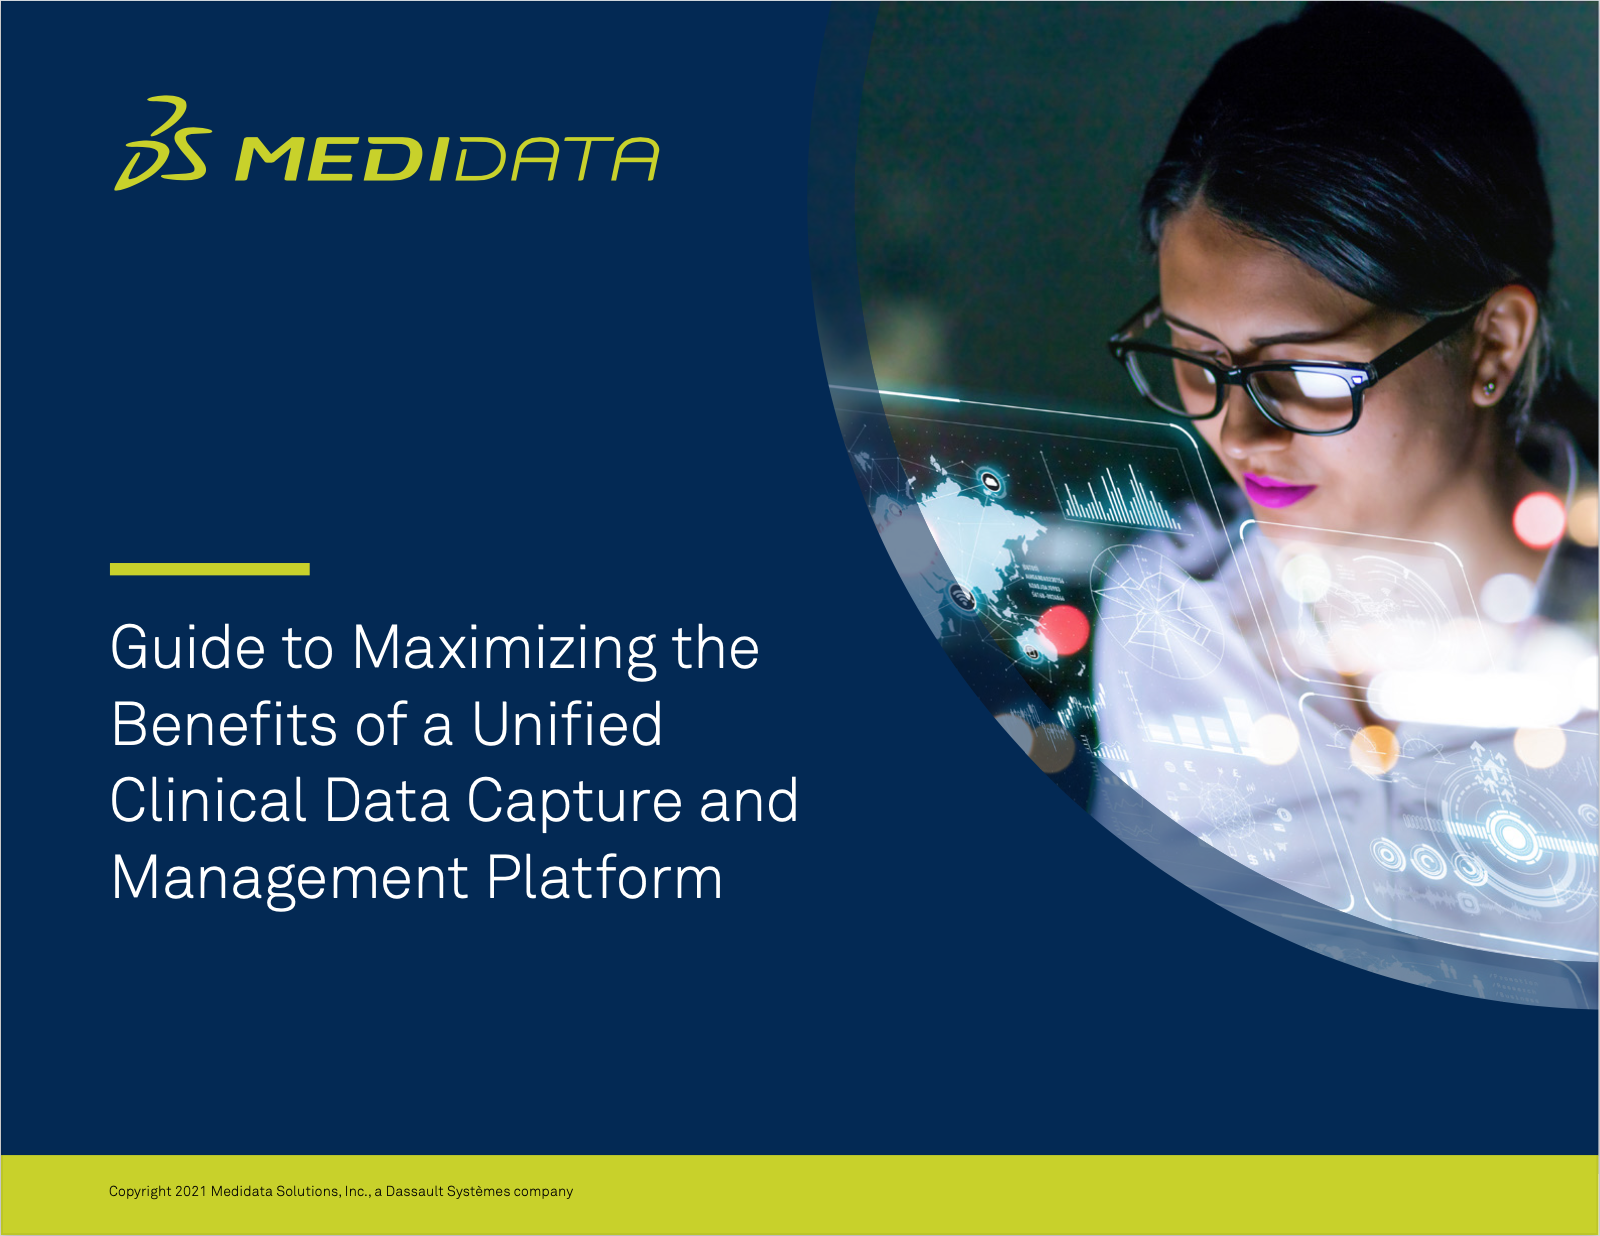 Mitigate risks and accelerate your trials with a Unified Clinical Data Capture and Management Platform.